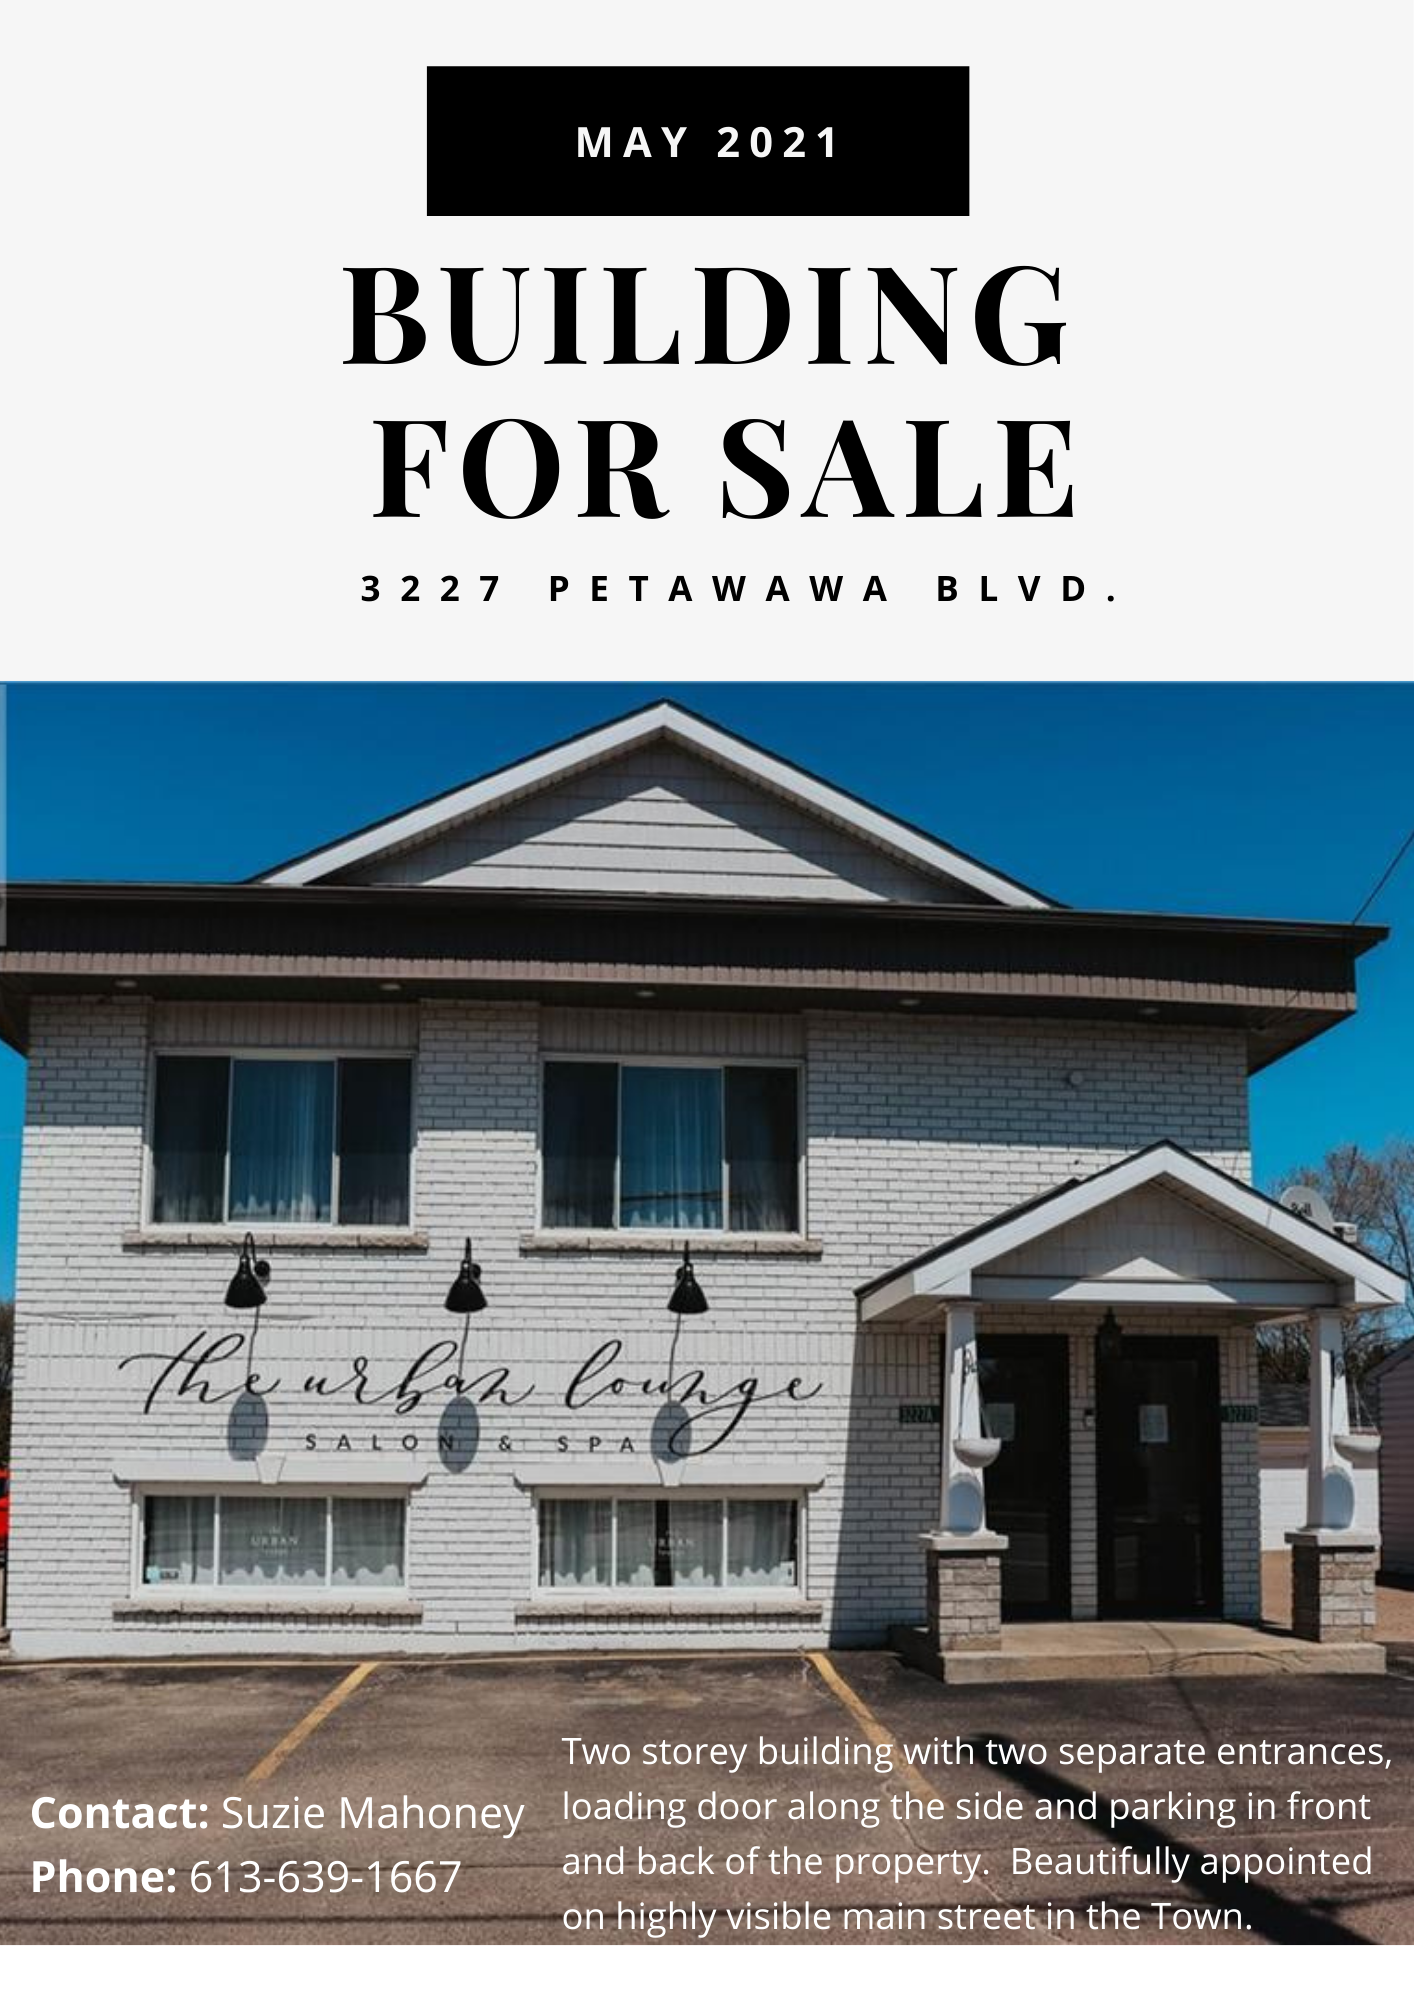 a sales listing for a commercial building in Petawawa